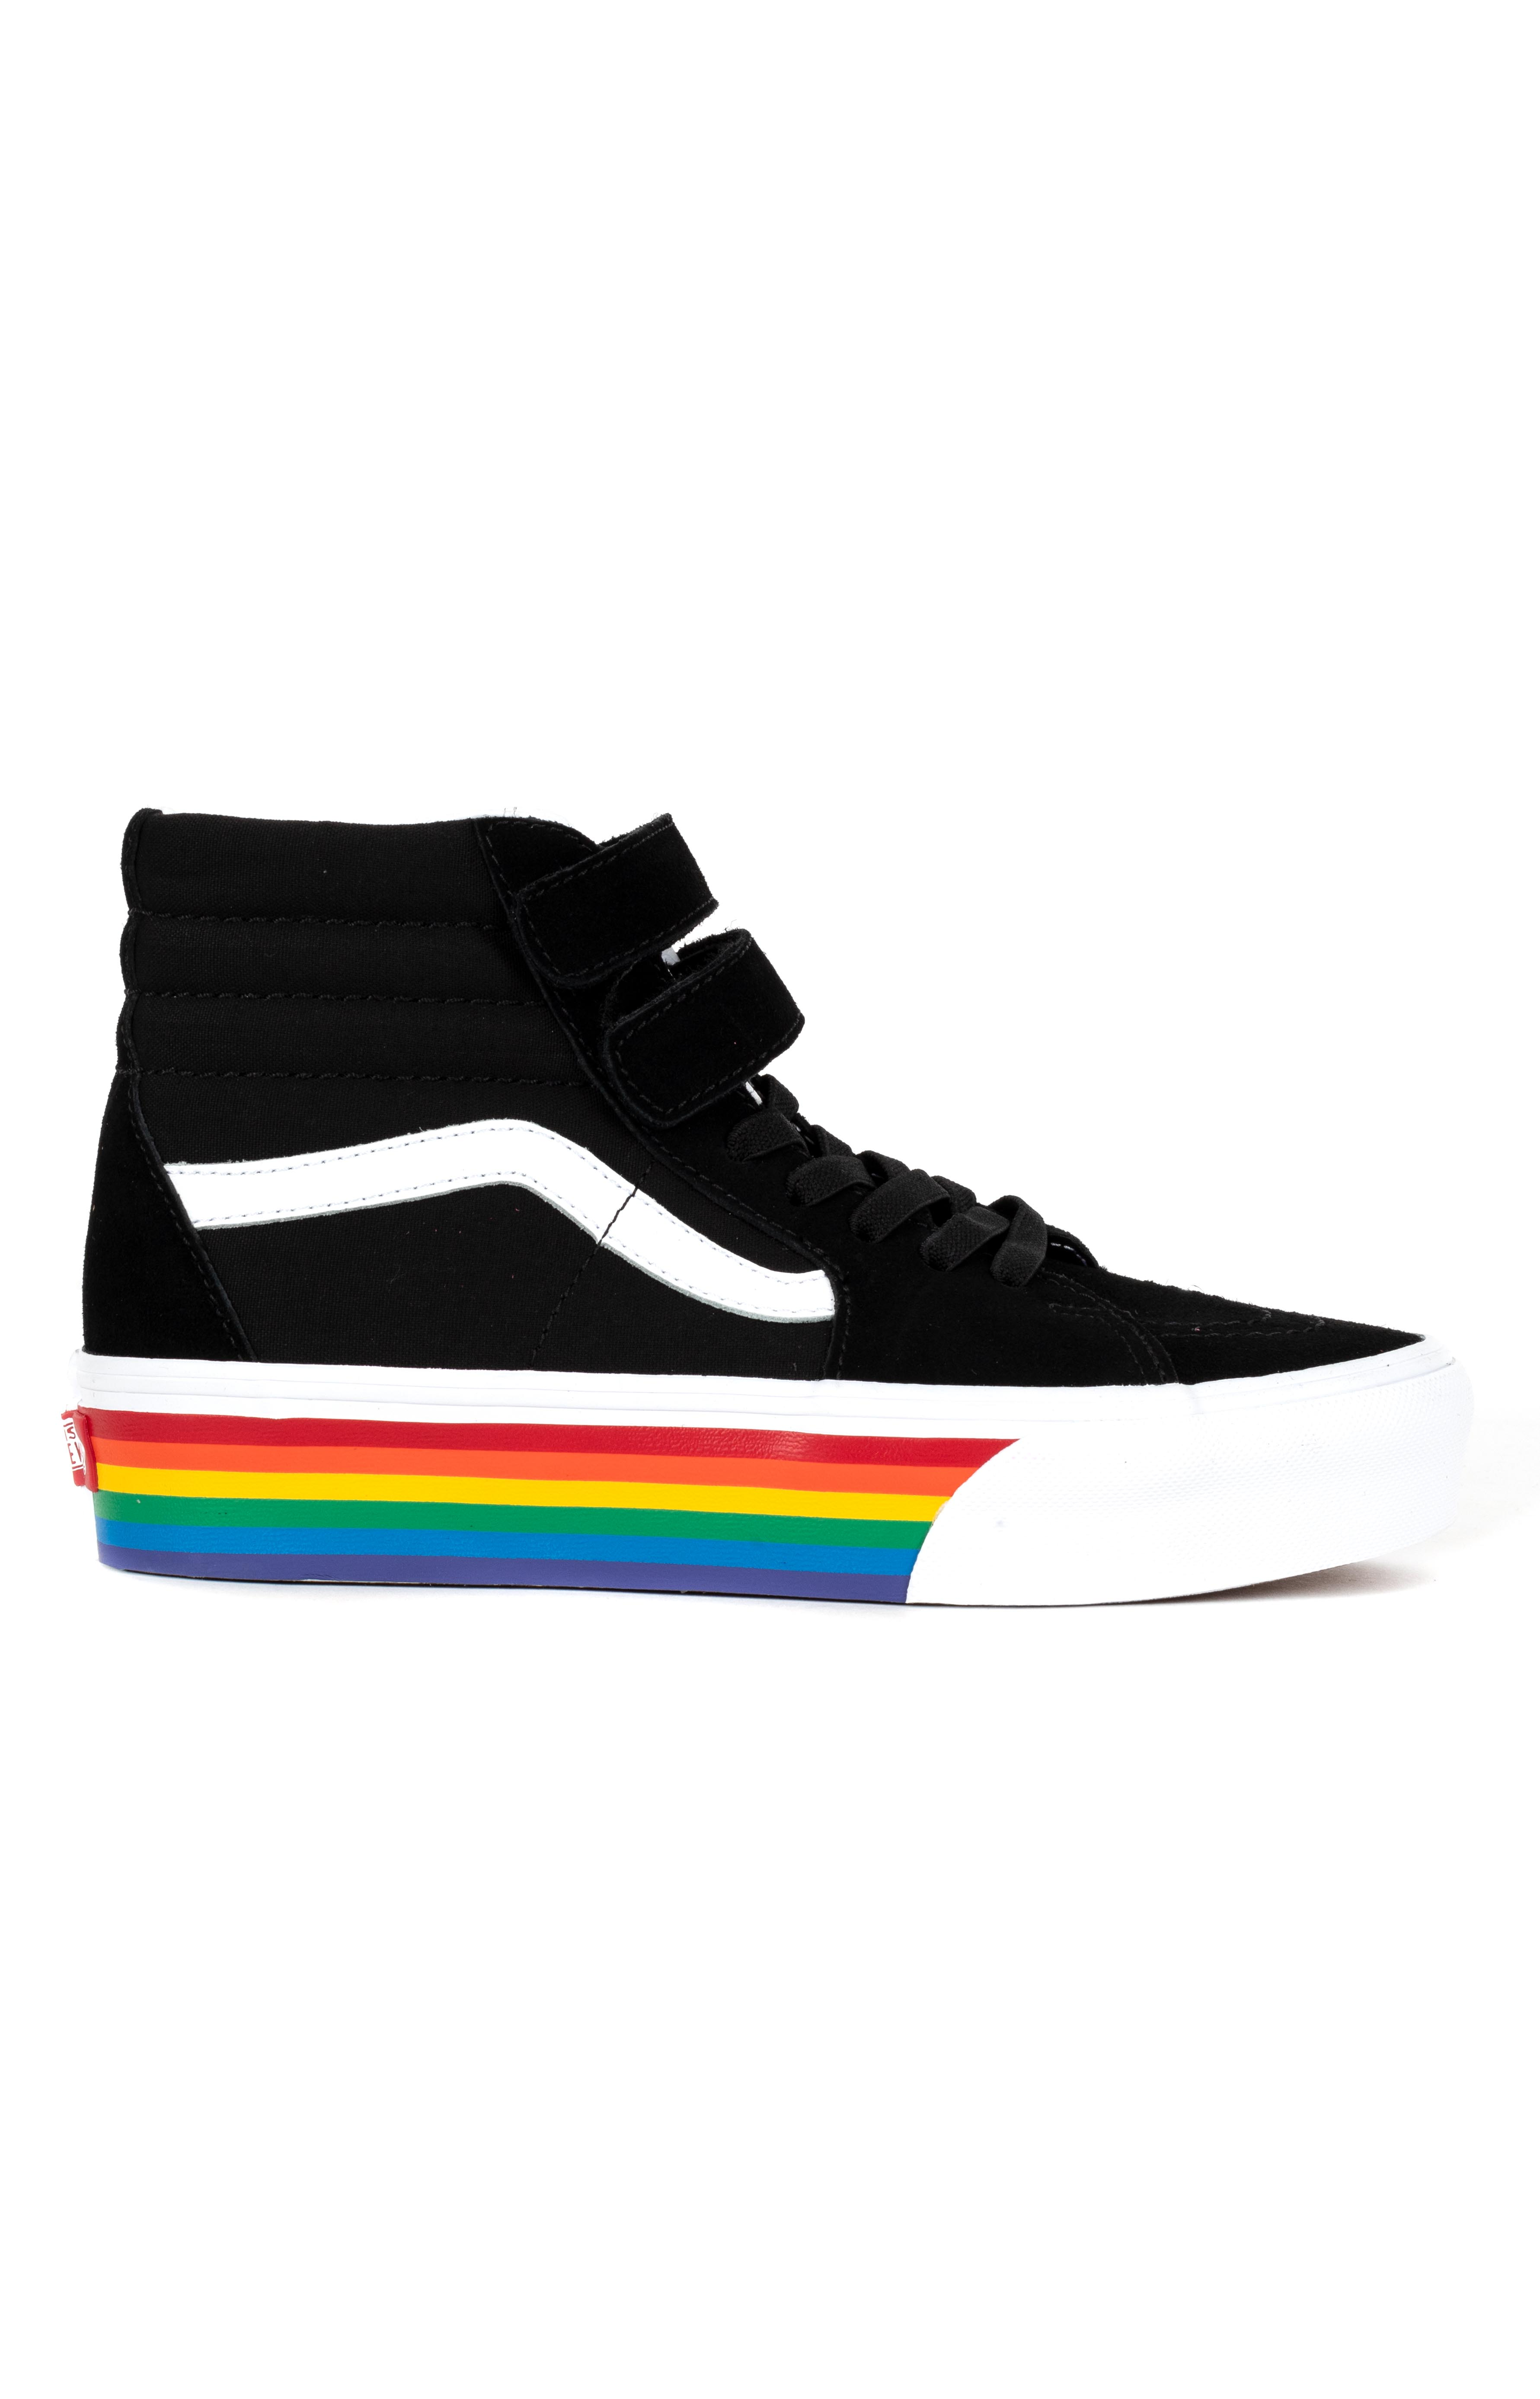 (5K4VSV) Rainbow Sk8-Hi V Platform Shoe - Black/True White